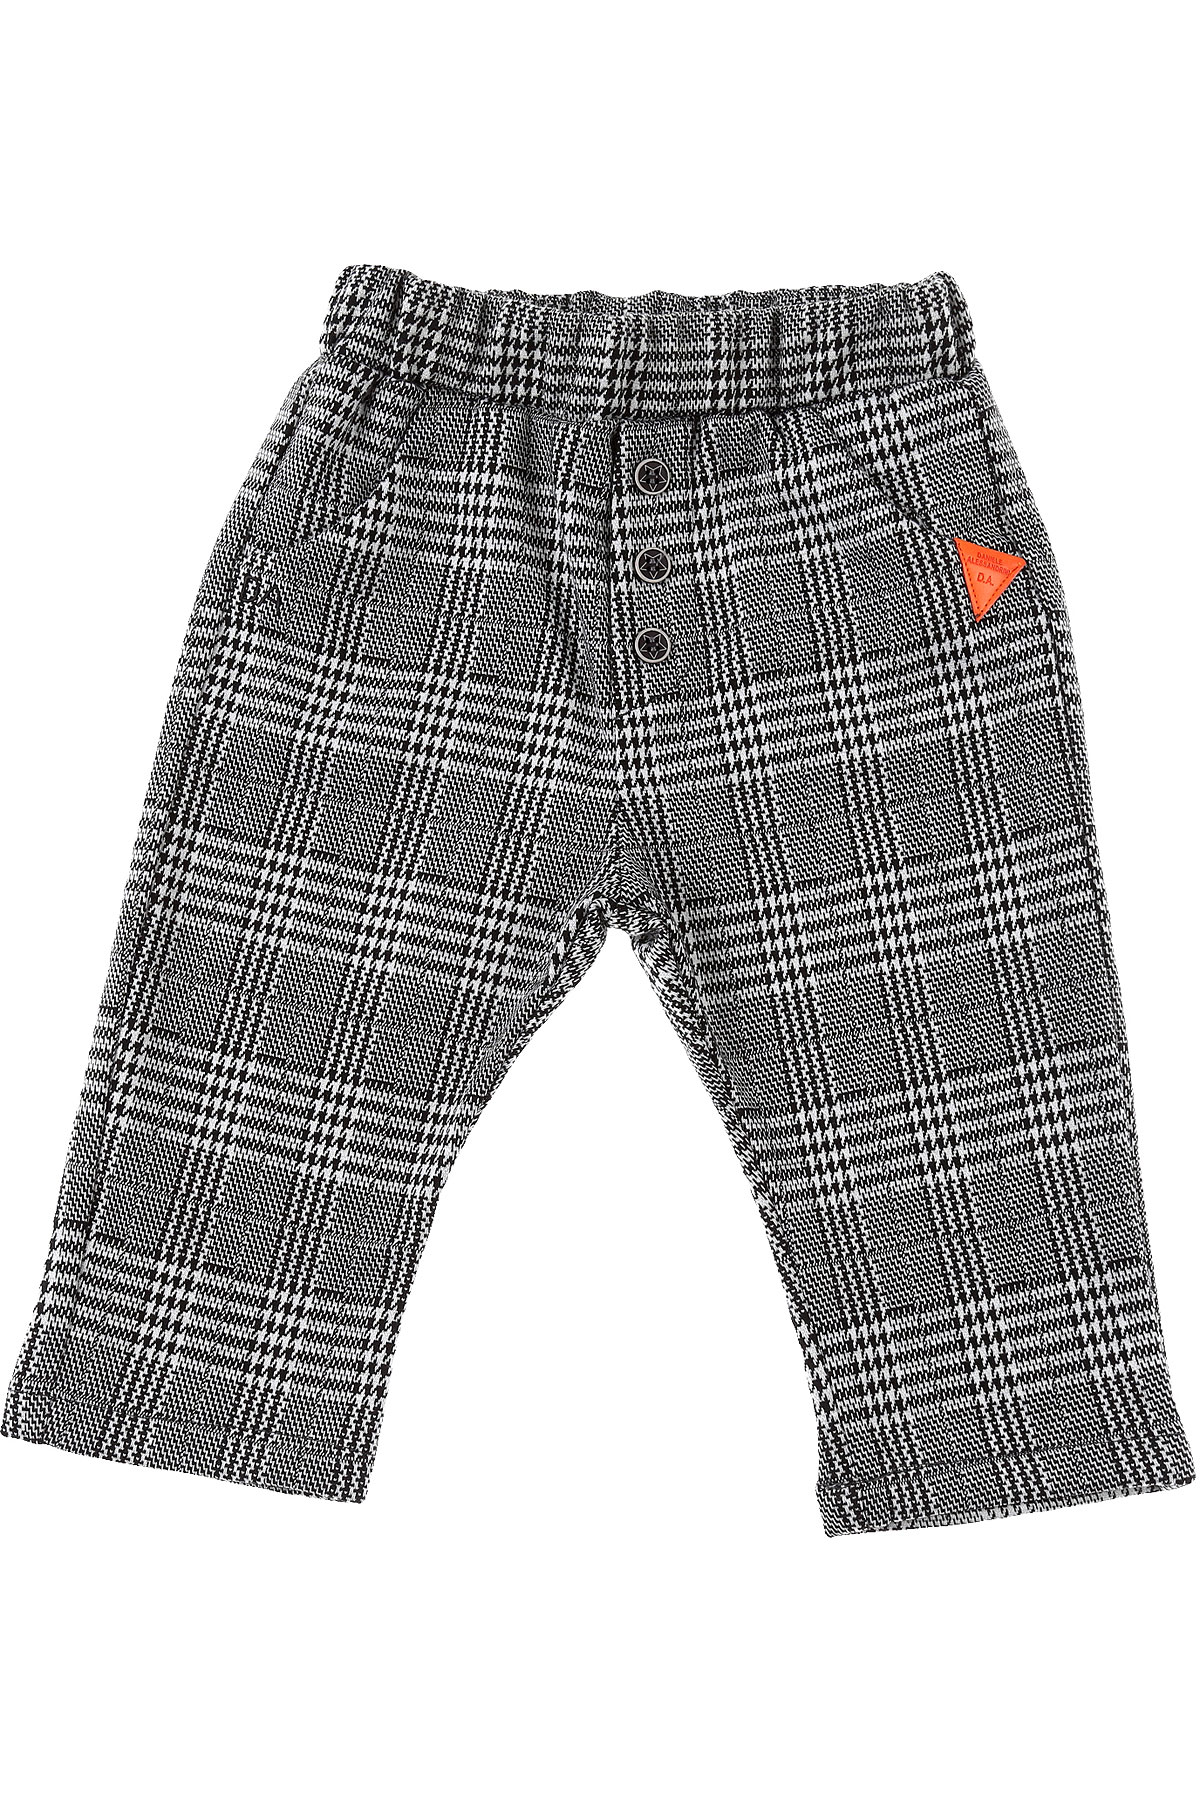 Daniele Alessandrini Baby Pants for Boys On Sale, Black, polyester, 2019, 3Y 9 M